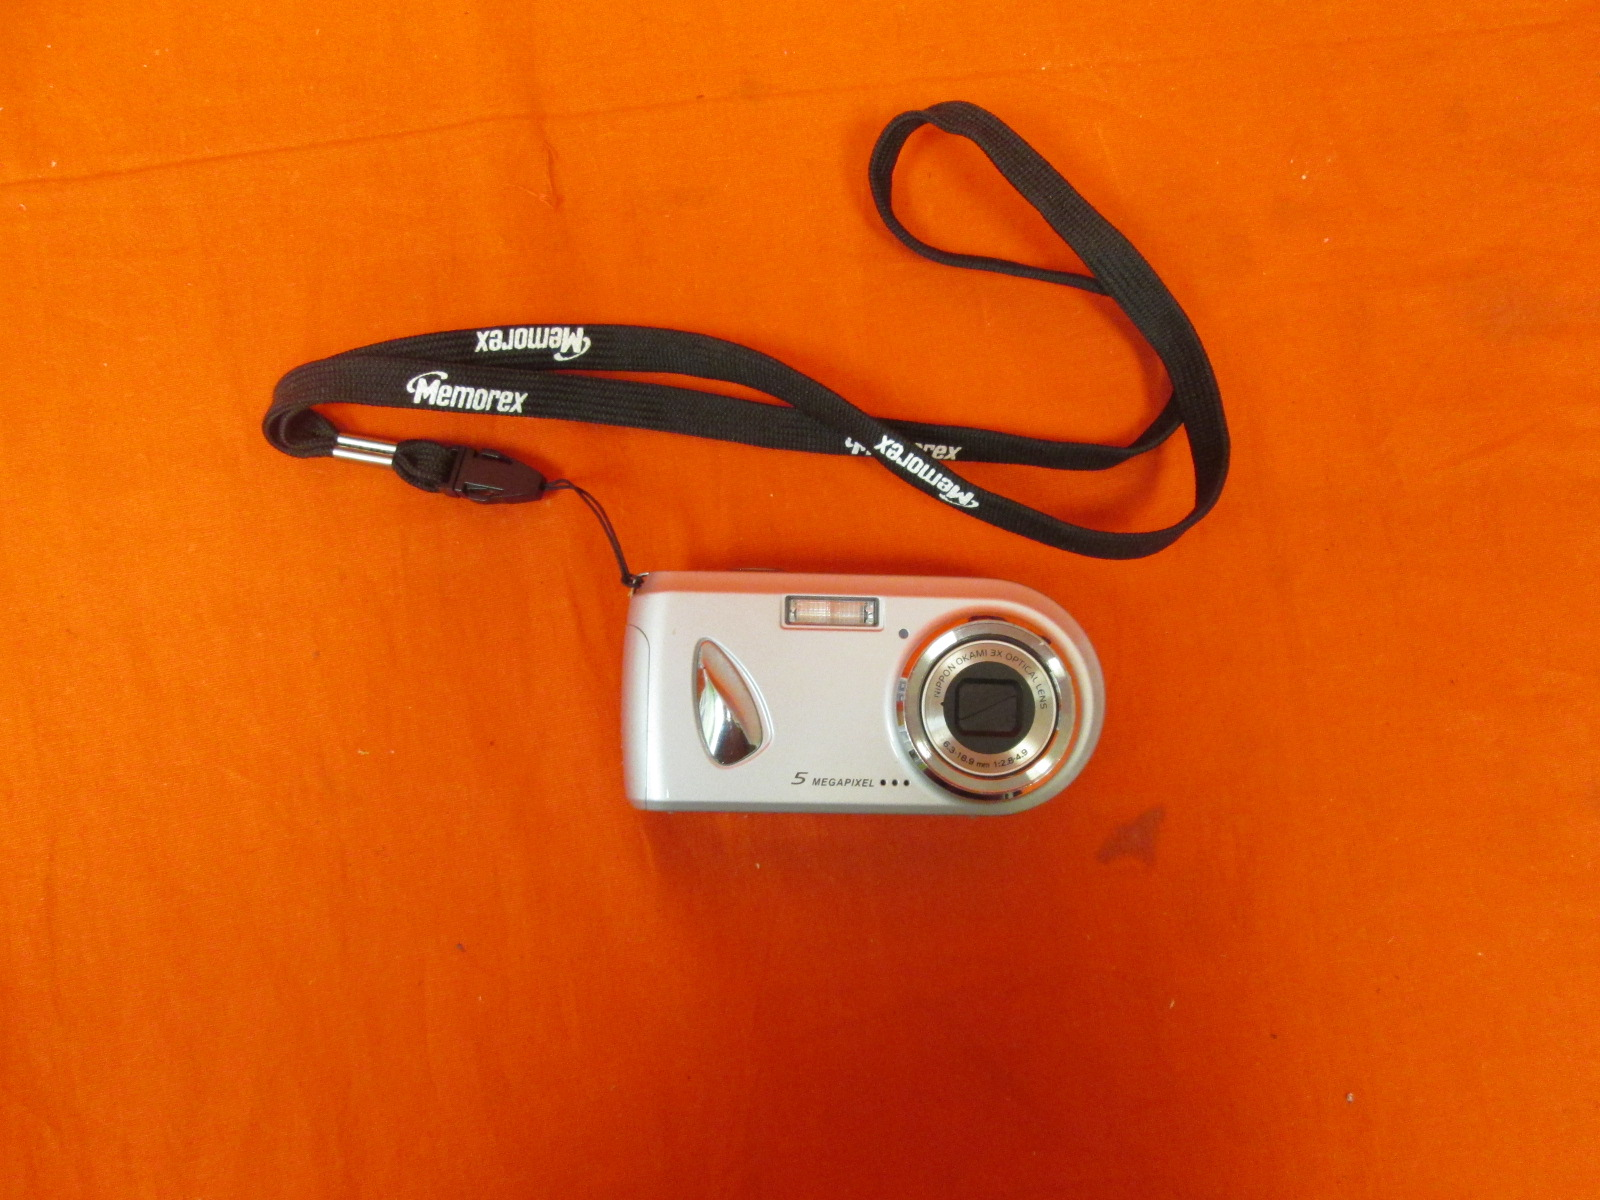 DXG DXG-518S 5.0 MegaPixel Camera With 3X Optical Zoom And 2 Inch LCD